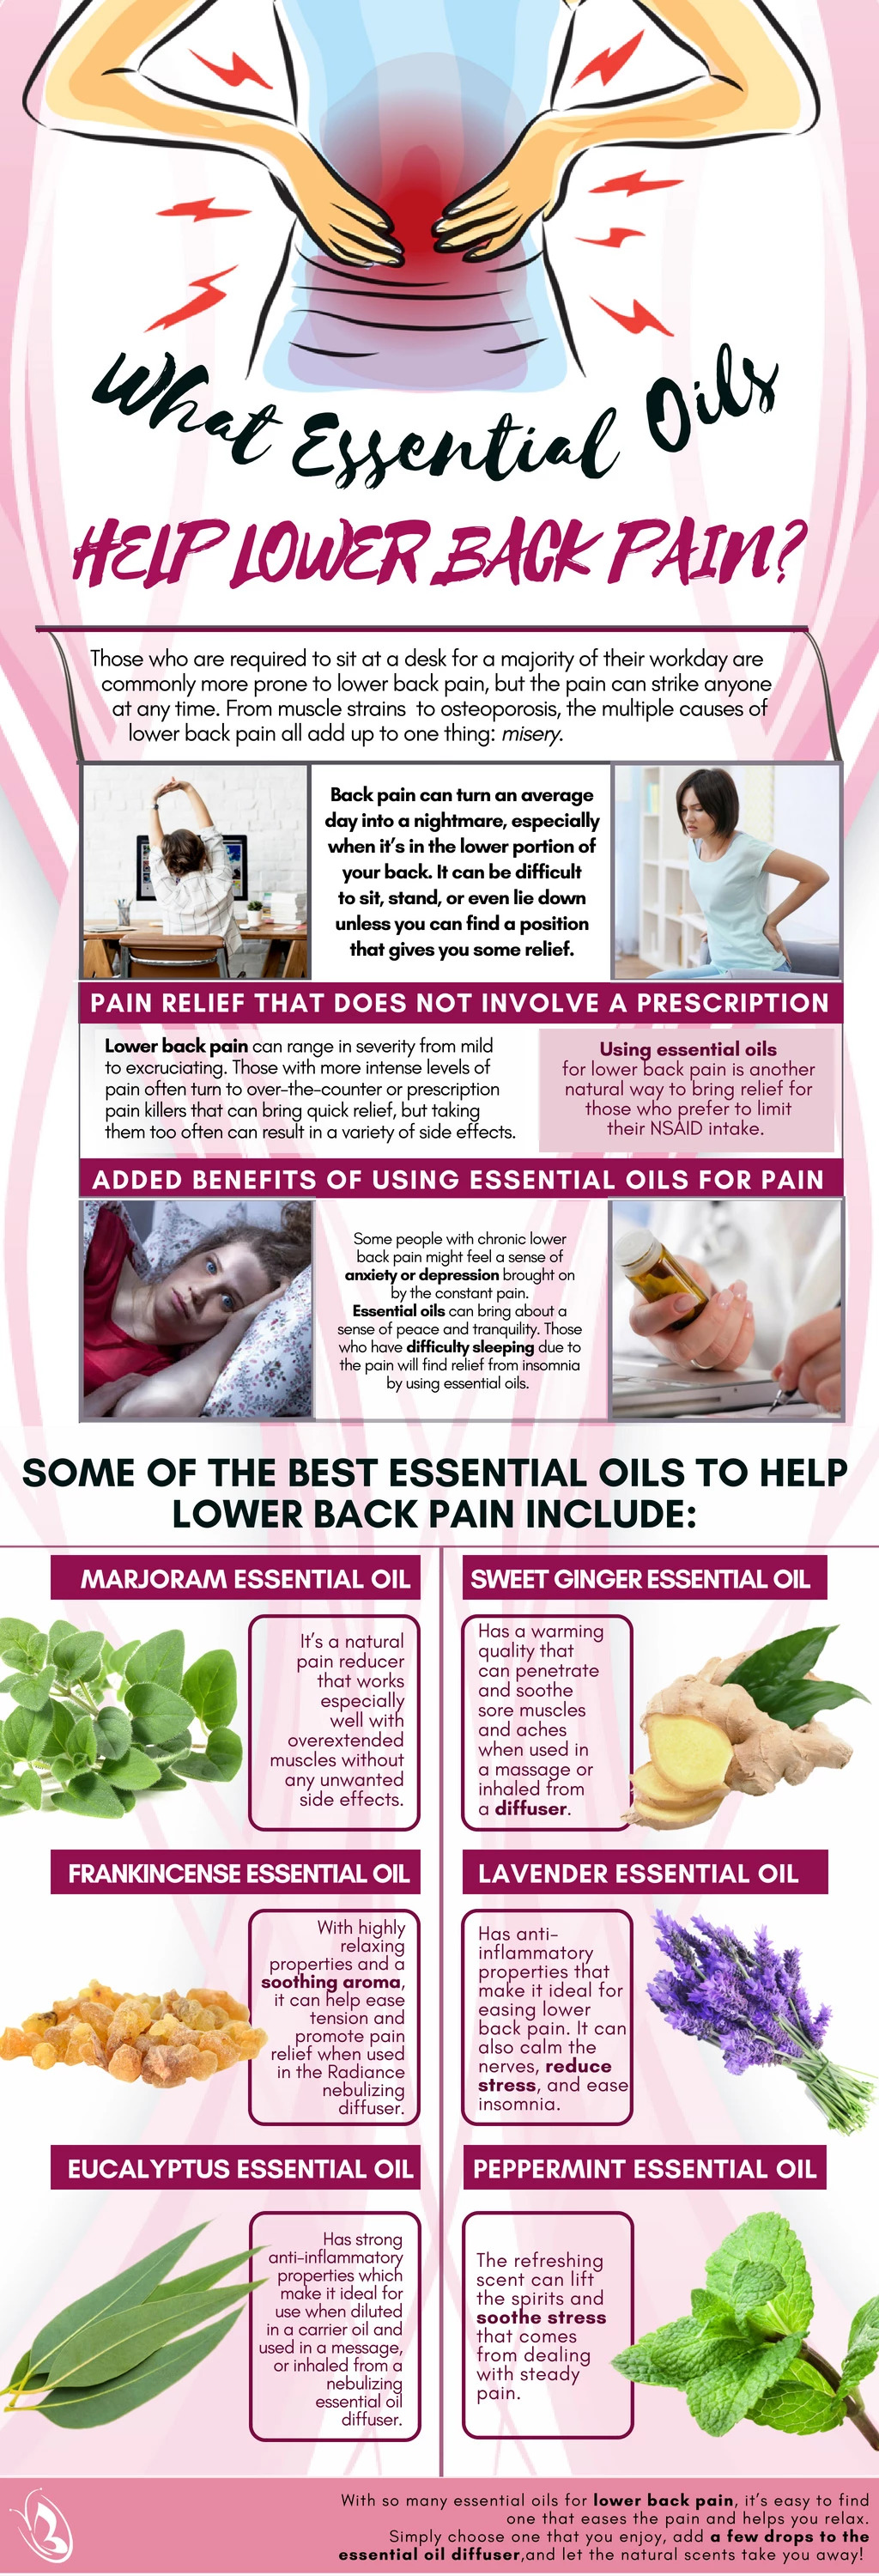 Essential Oils for Lower Back Pain